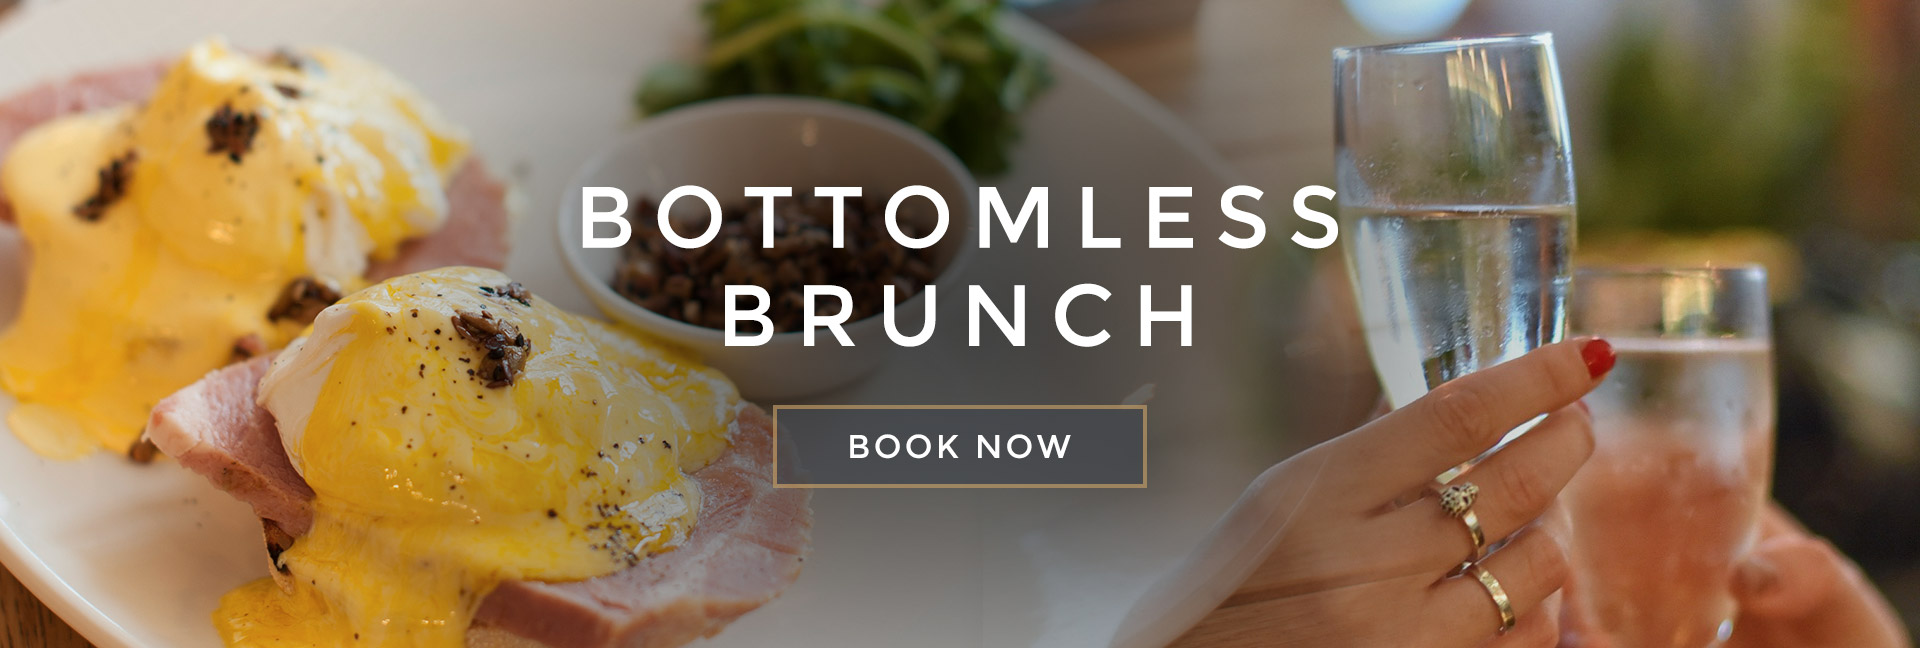 Bottomless Brunch at All Bar One Holborn - Book now